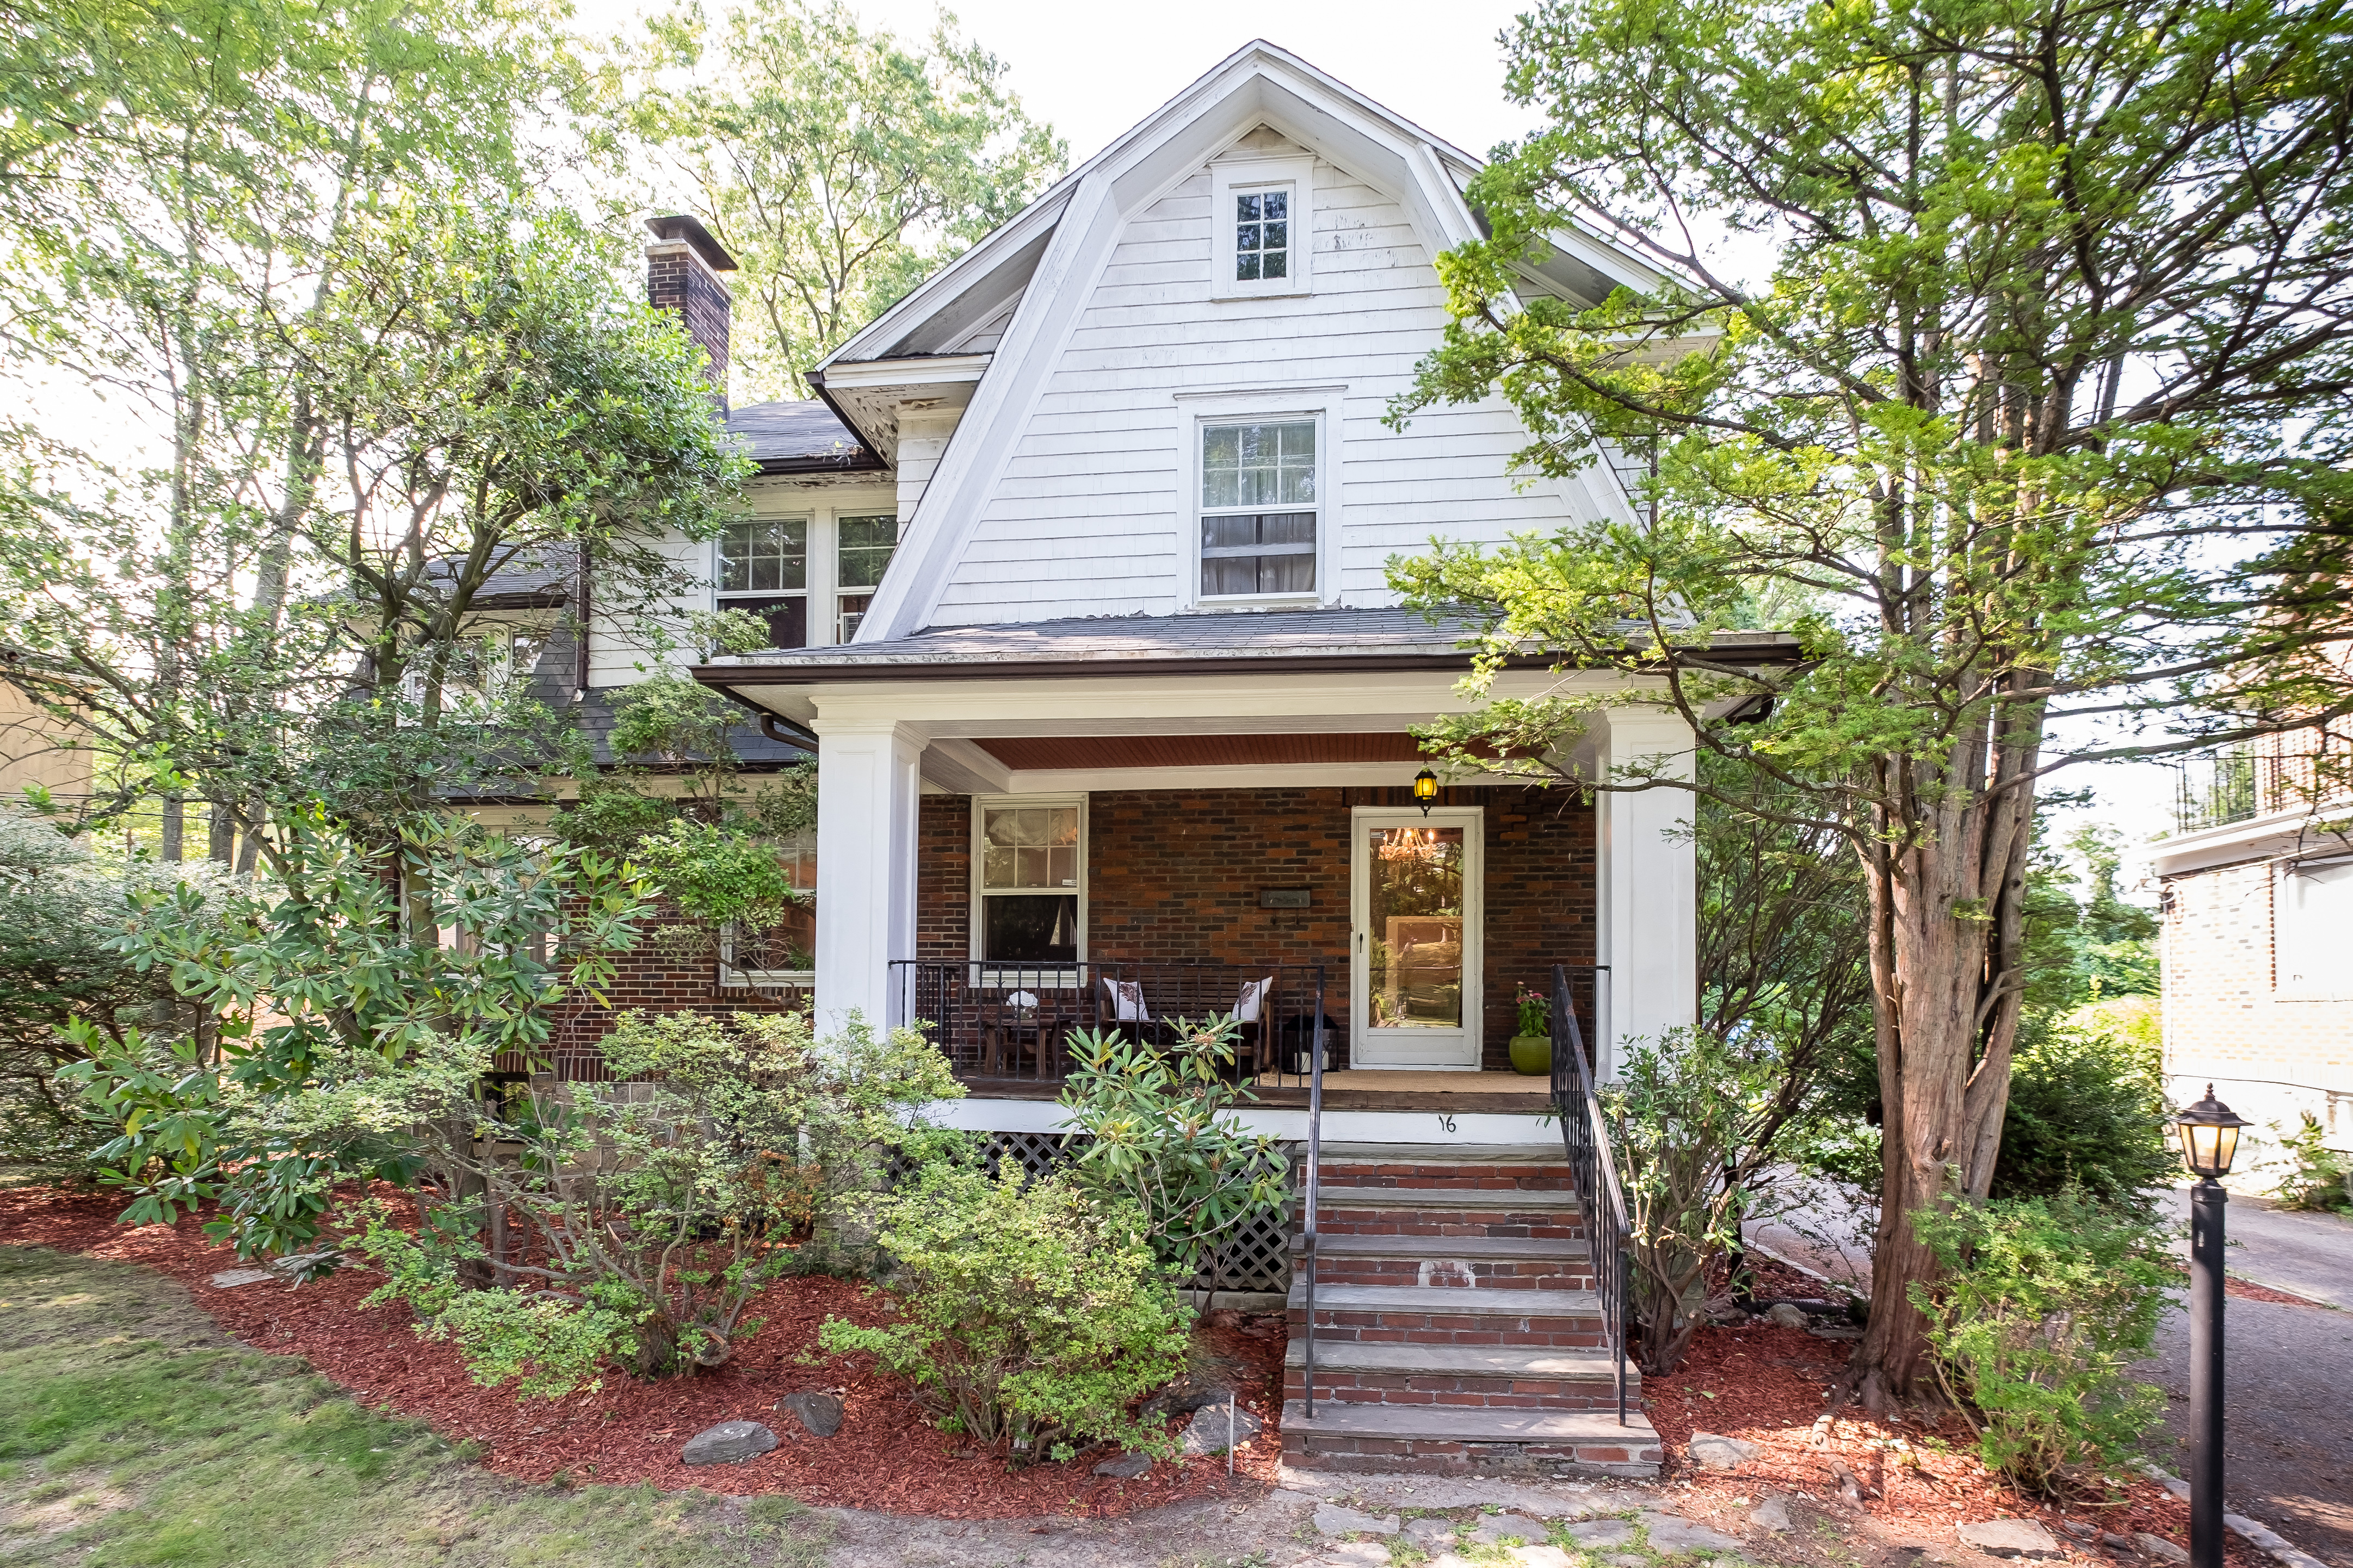 Single Family Home for Sale at Welcome Home 16 Pierce Street New Rochelle, New York, 10801 United States